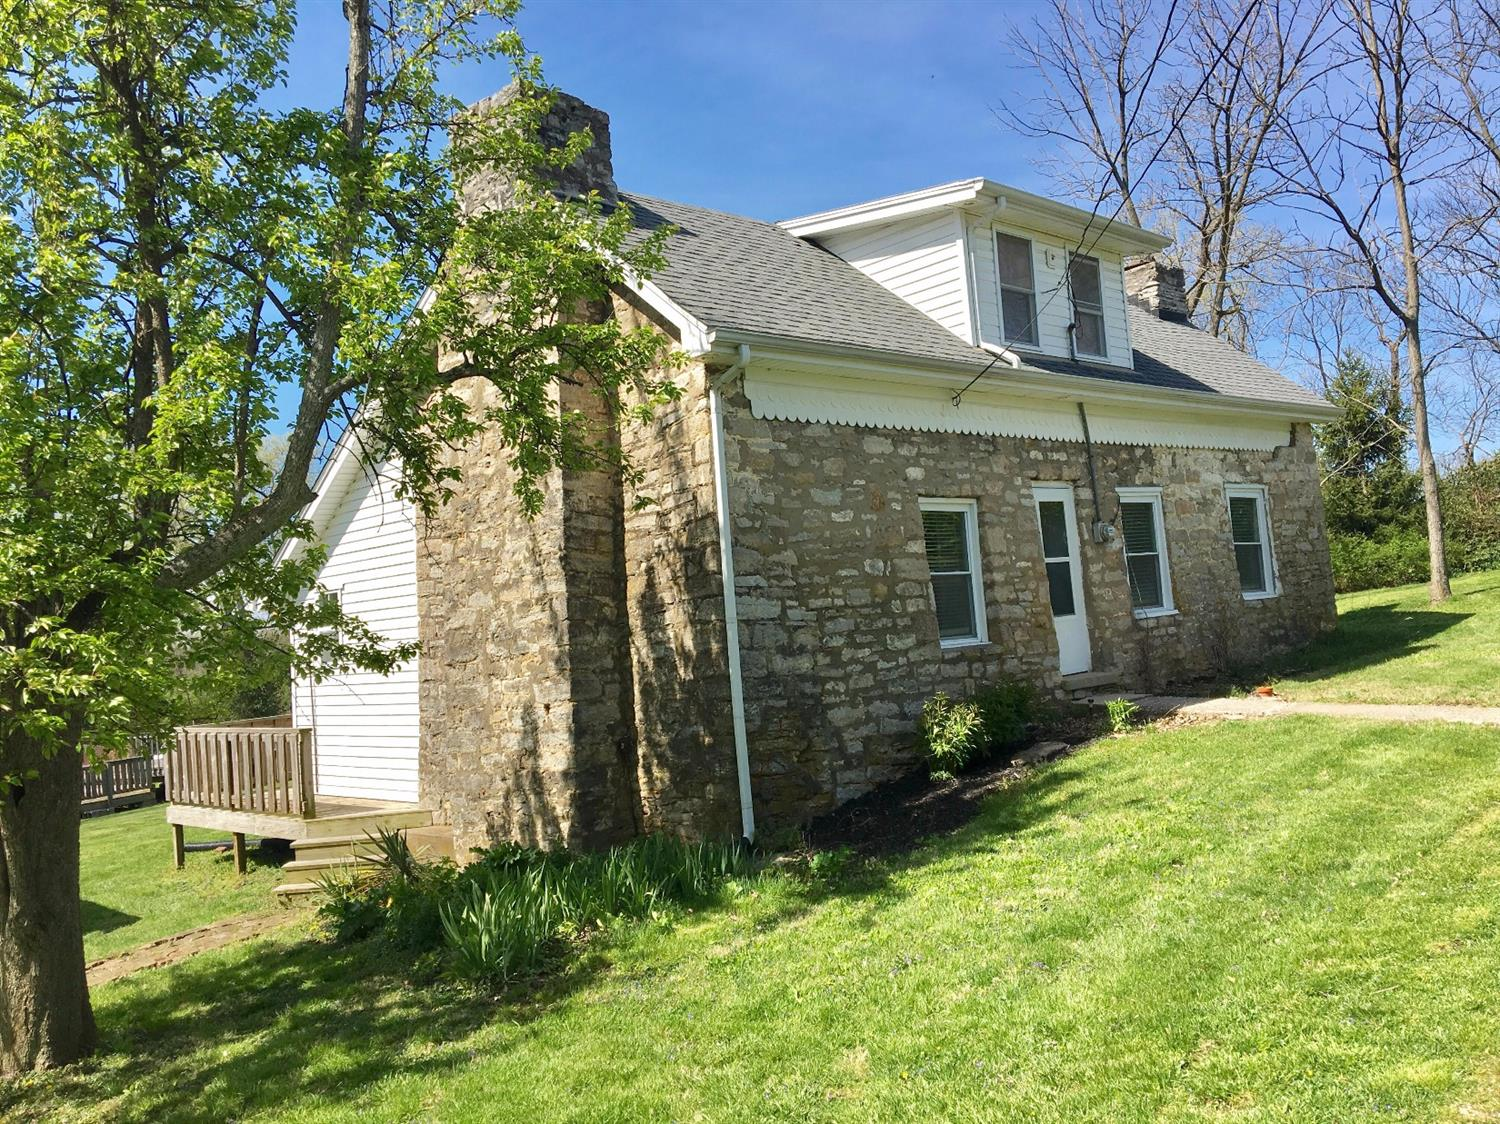 Home For Sale at 371-B1 Shadrick Ferry Rd, Frankfort, KY 40601